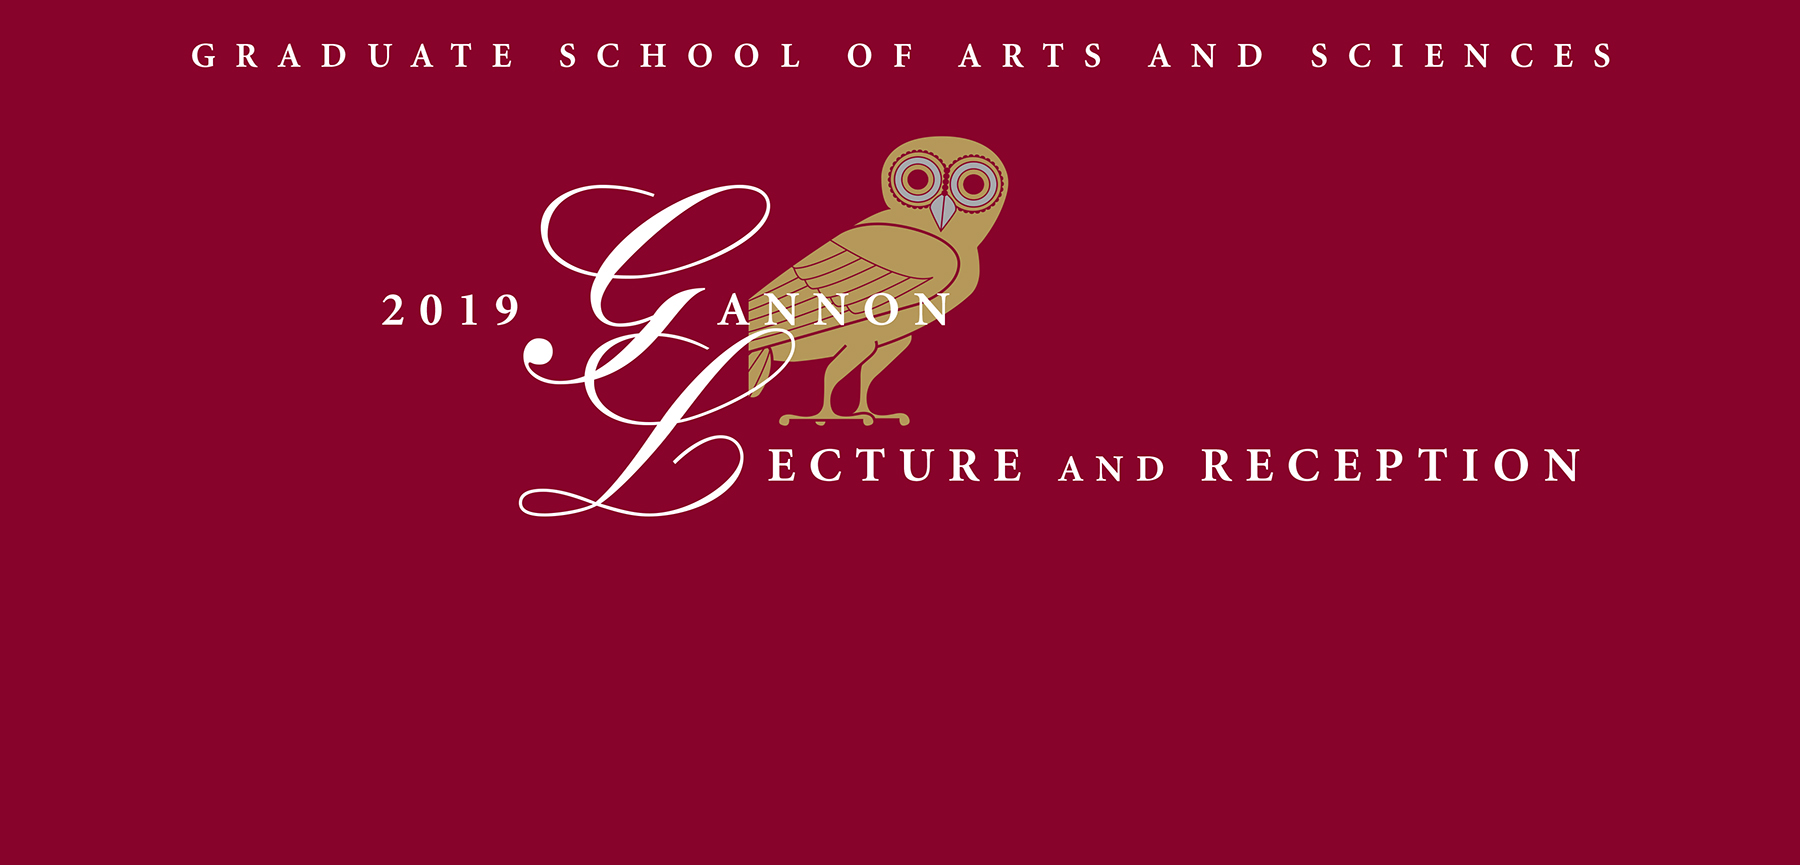 Gannon Lecture and Reception: March 7, 2019